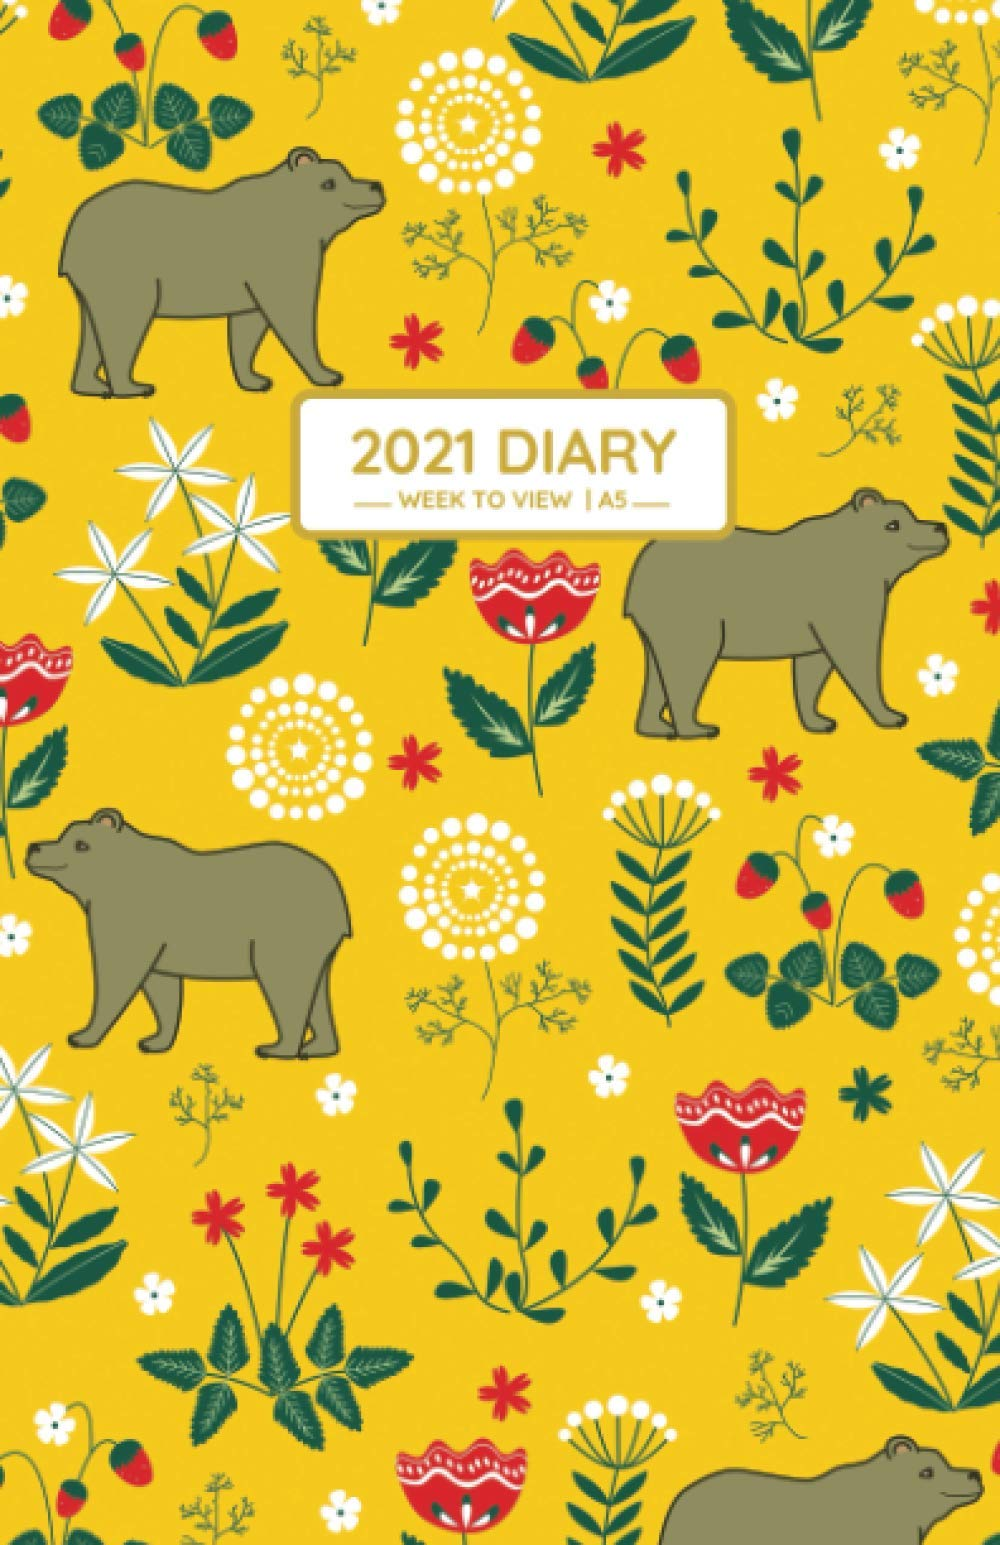 2021 Diary 2021 Diary A5 Week to View Diary from January 2021 to December 2021,